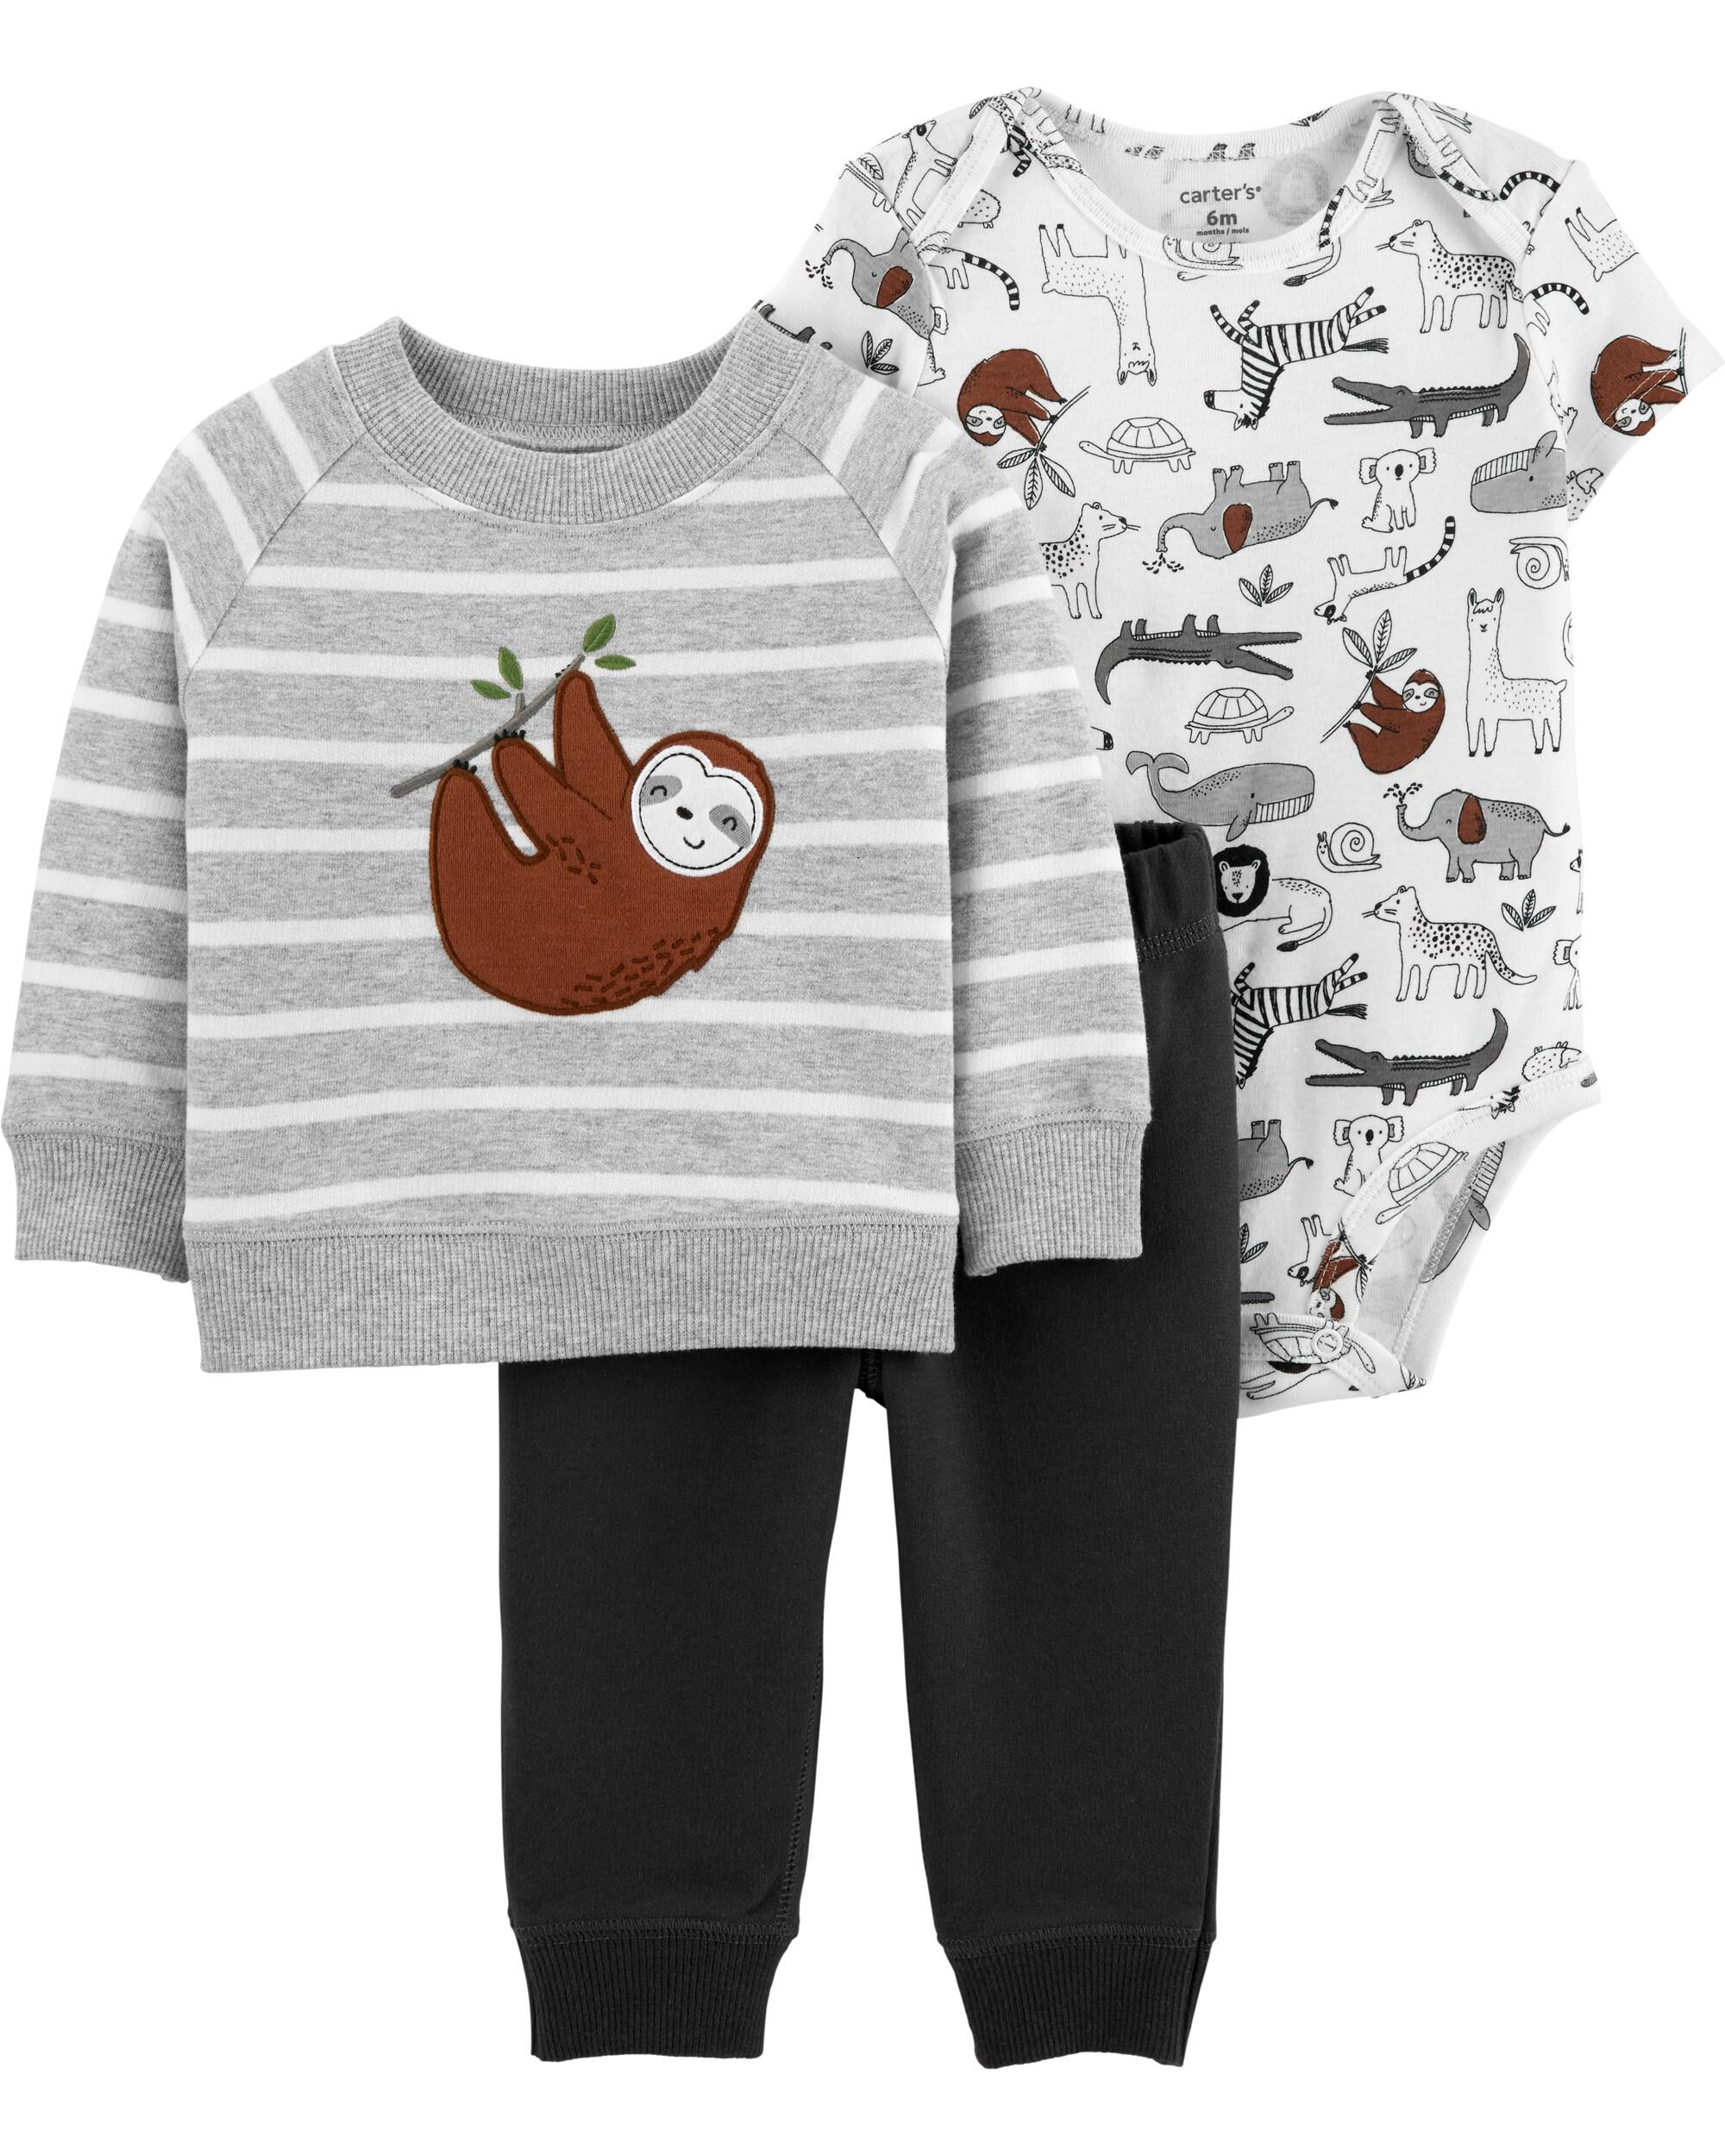 3-Piece Sloth Little Jacket Set